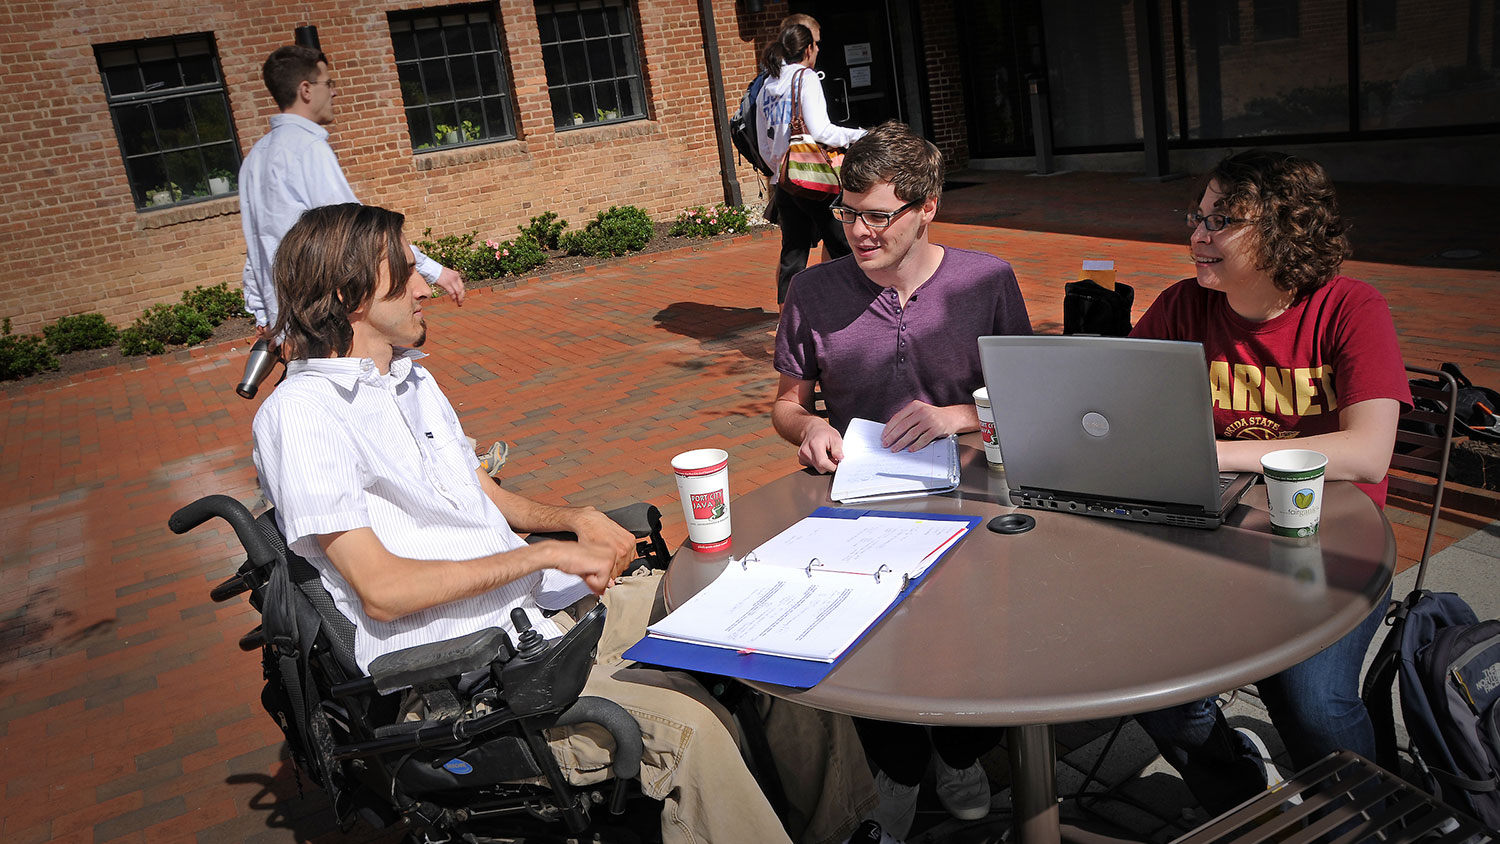 Students, some with disabilities, at Park Shops